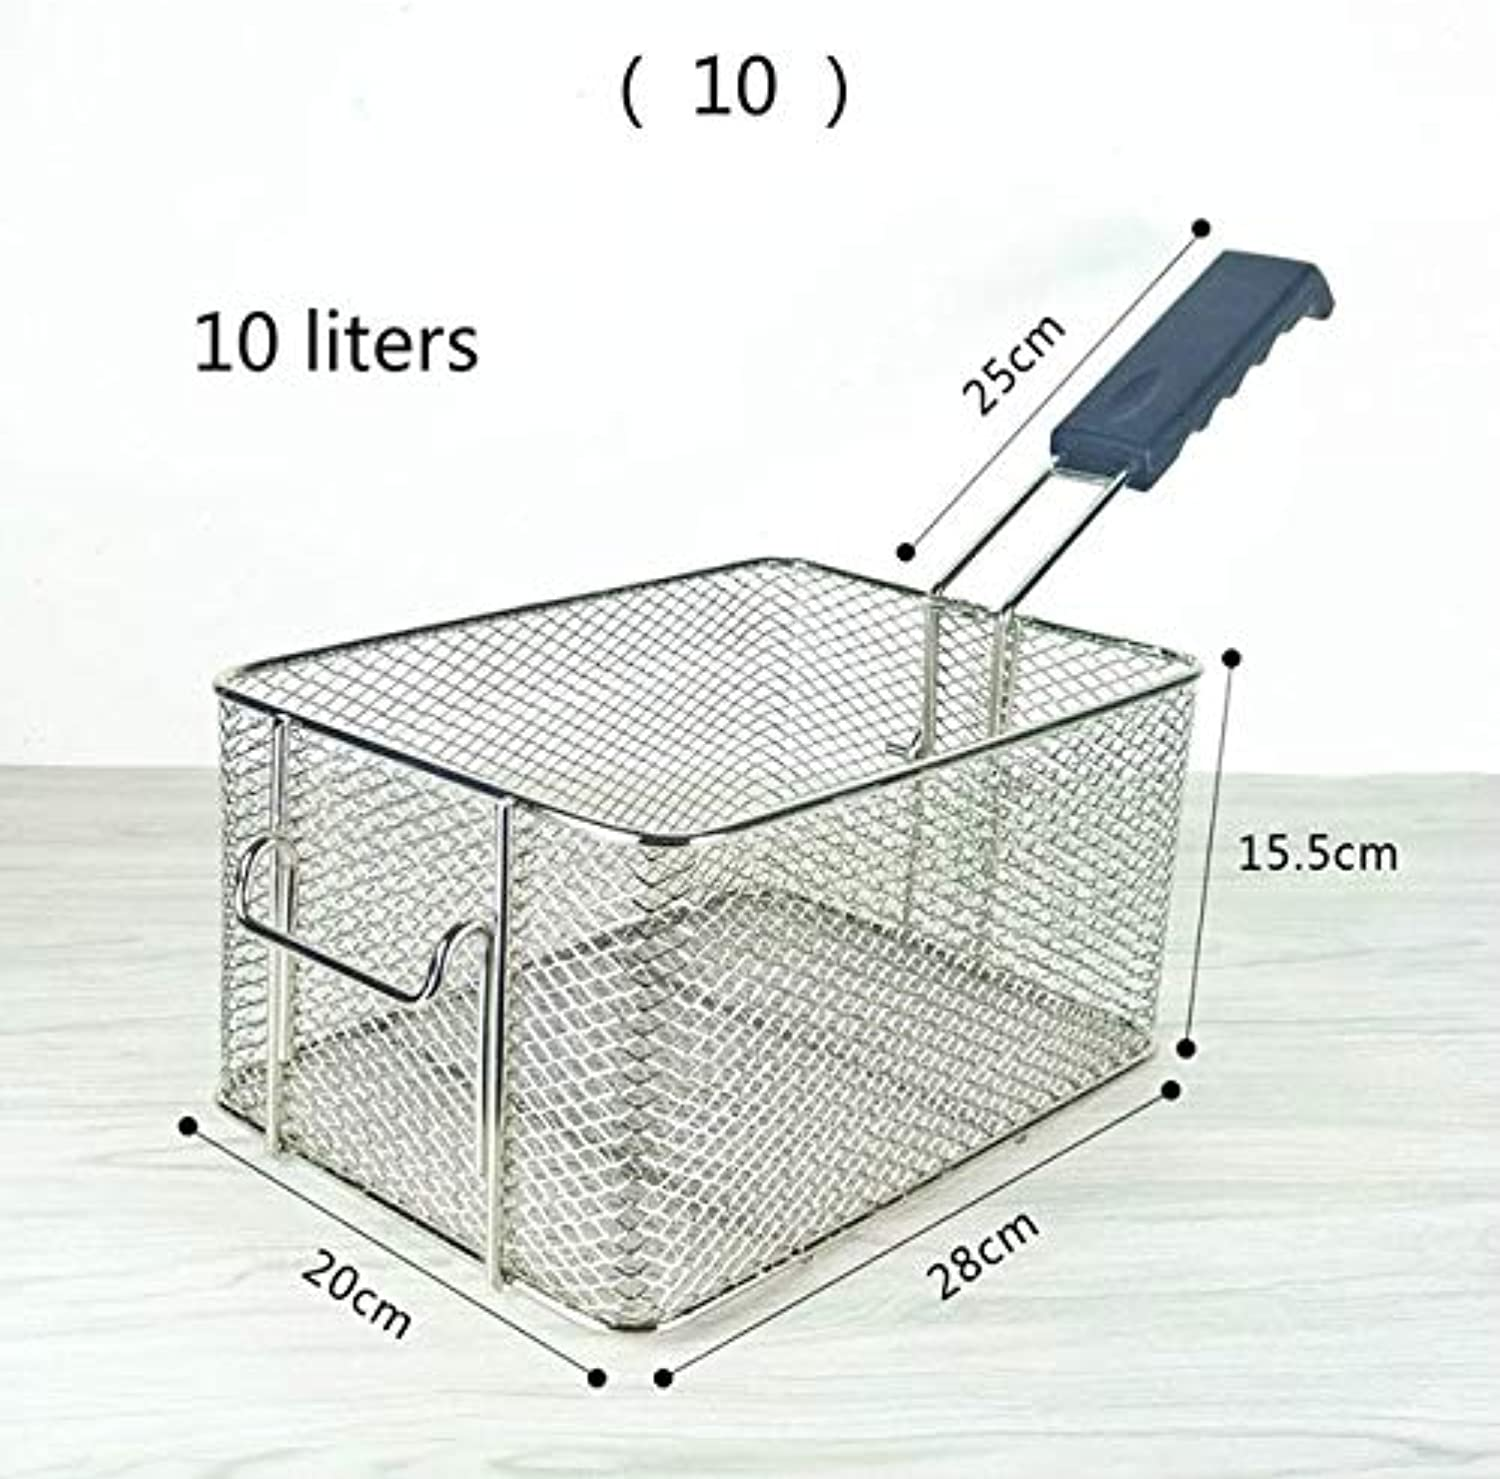 28 Options Stainless Steel Frying Screen French Fries Frame Square Filter net encrypt Colander Shaped Basket fryers Meshed   10